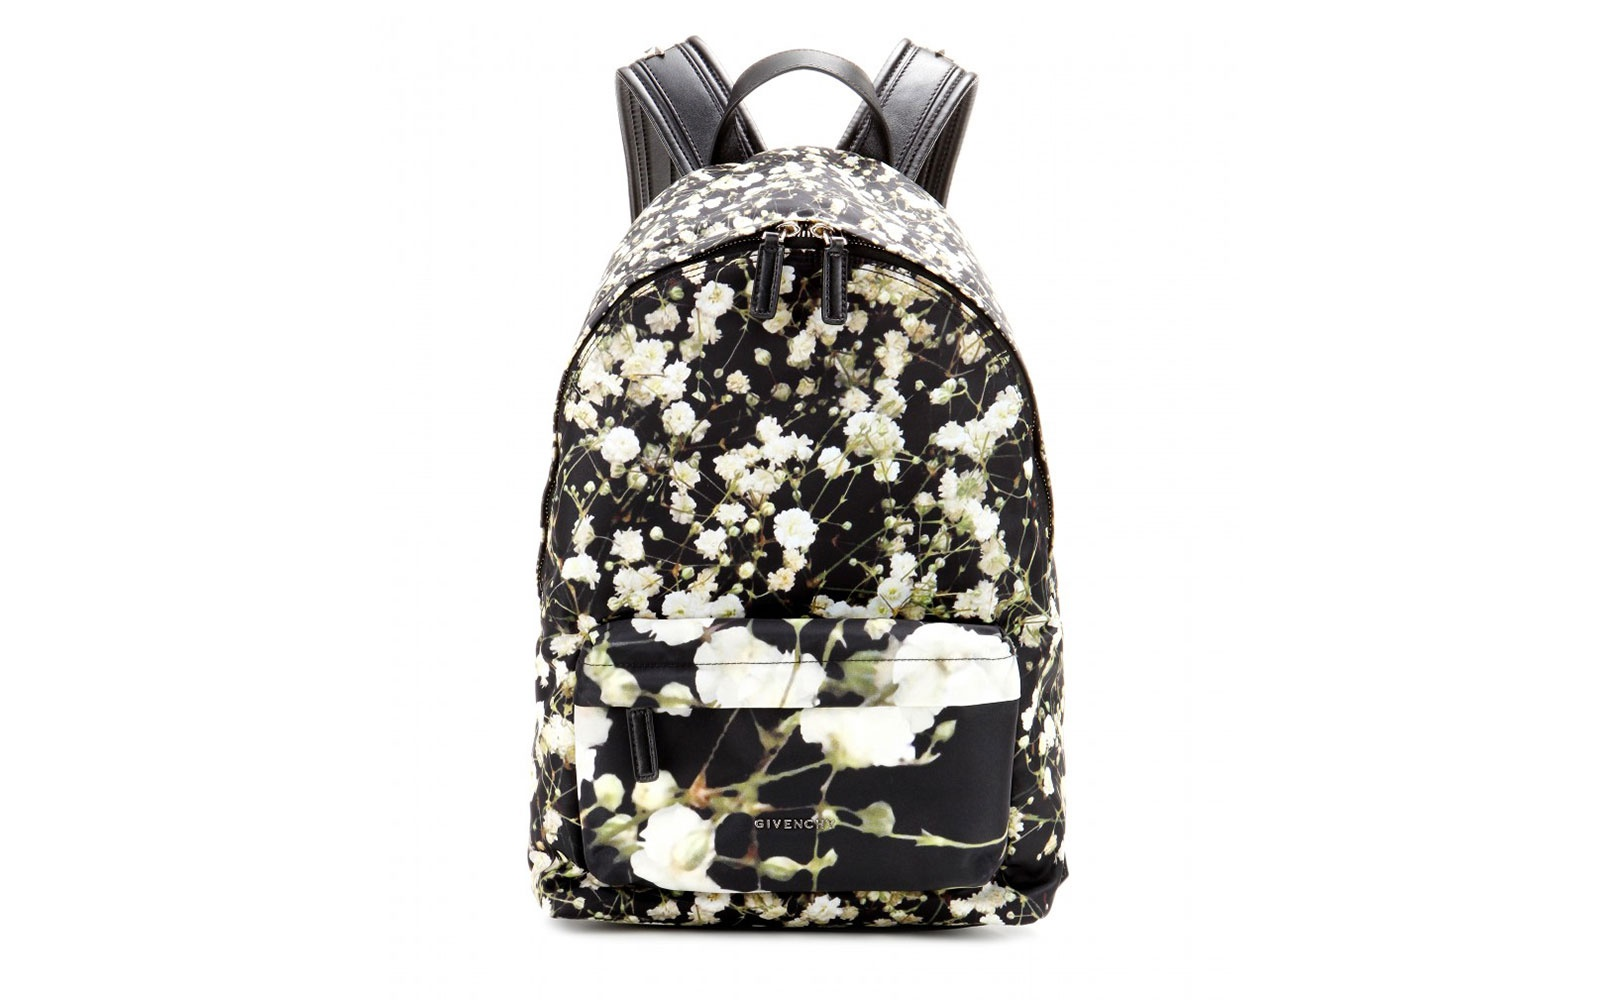 UPSTATE0615-givenchy-babys-breath-printed-backpack.jpg